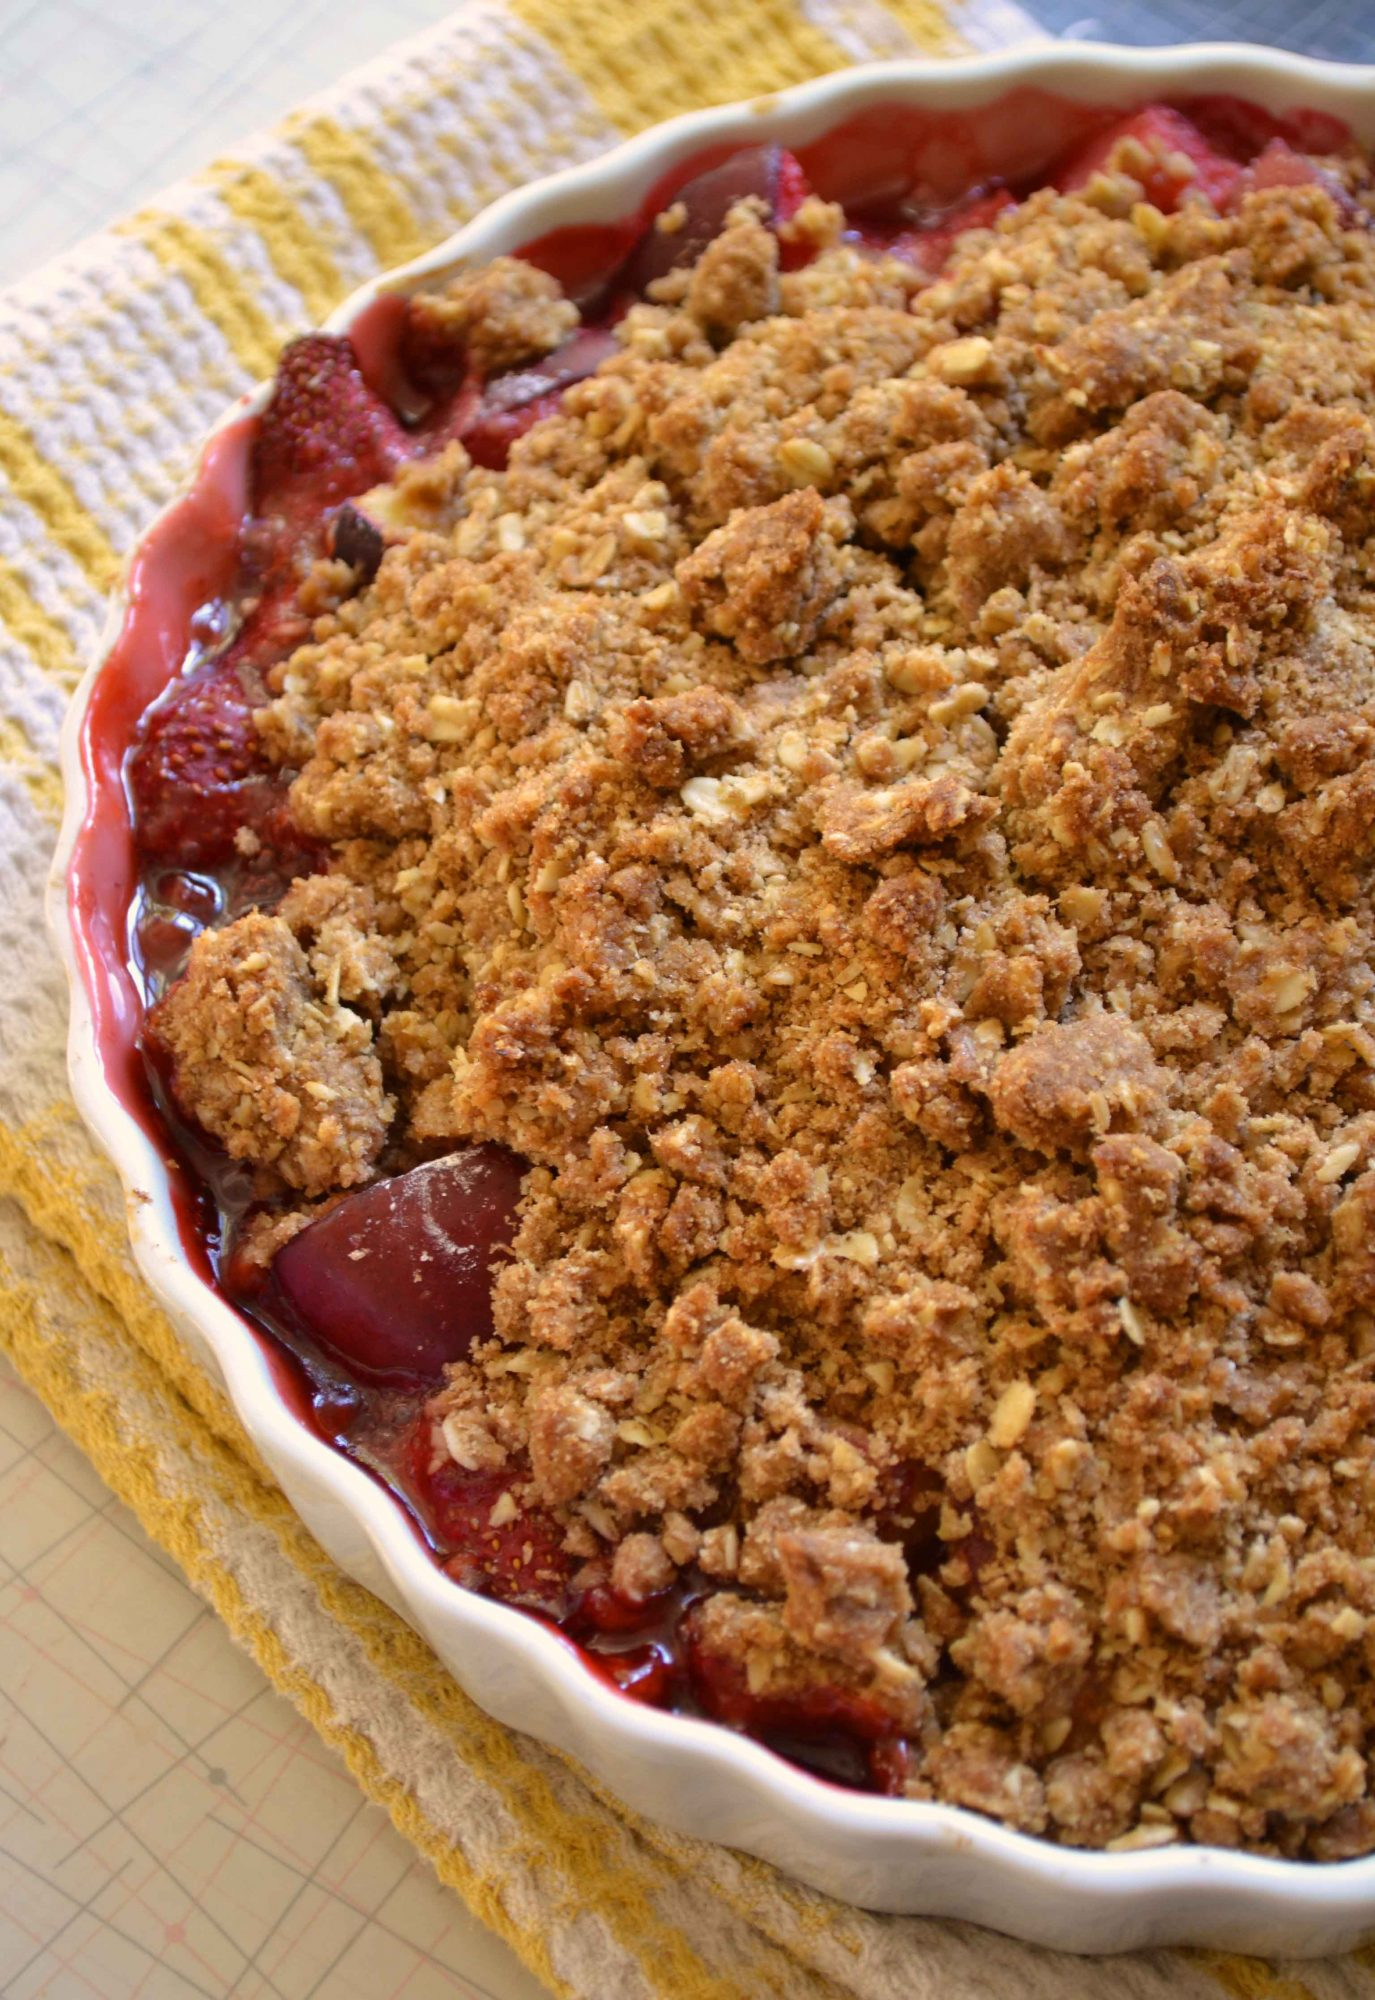 Strawberry-Plum Crumble (with Sour Cream Ice Cream) - Dinner With ...